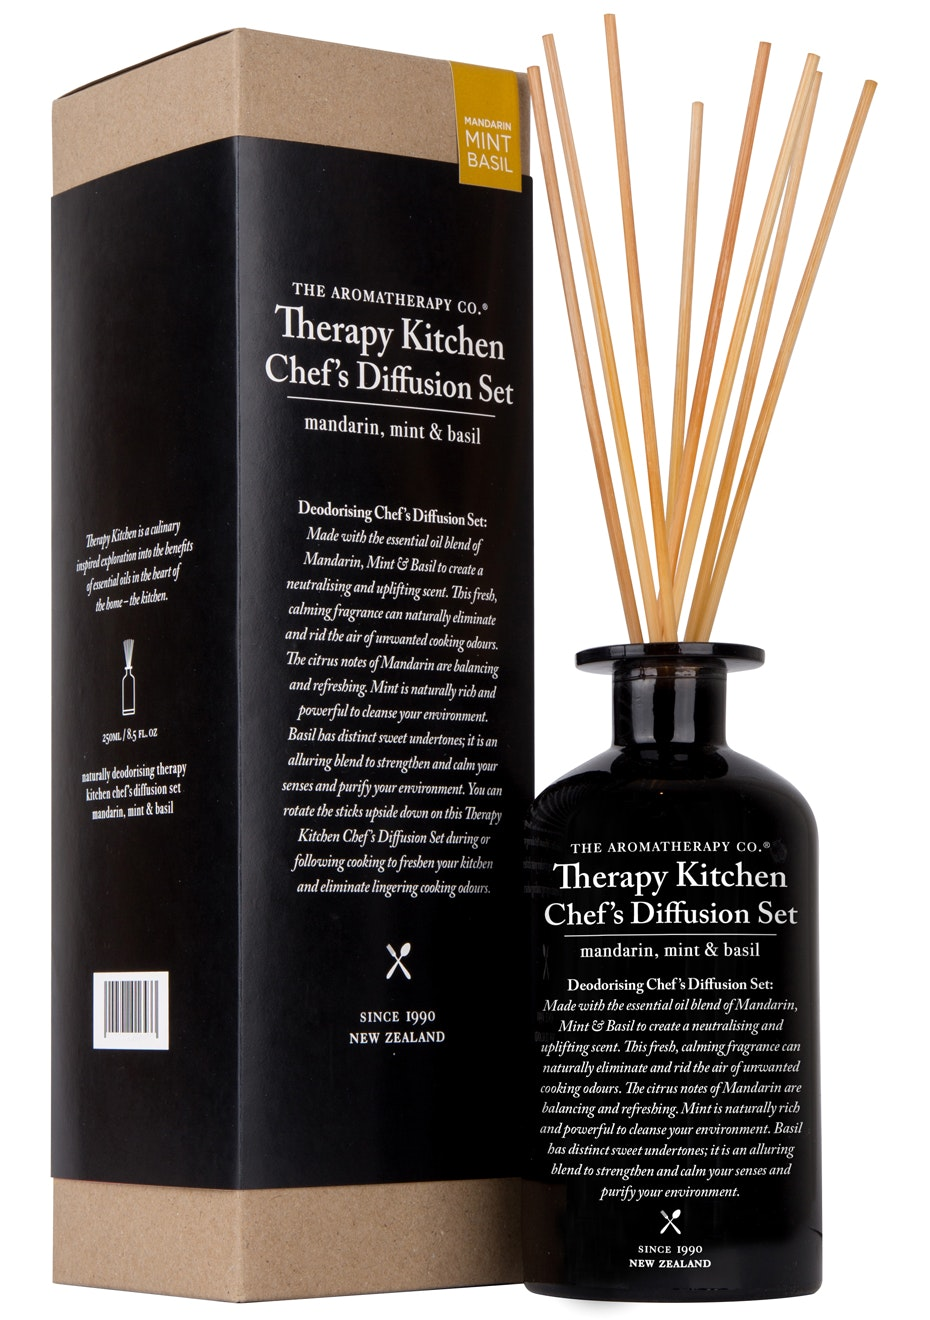 The Aromatherapy Co. Therapy Kitchen Chef's Diffusion Set - Mandarin, Mint & Basil